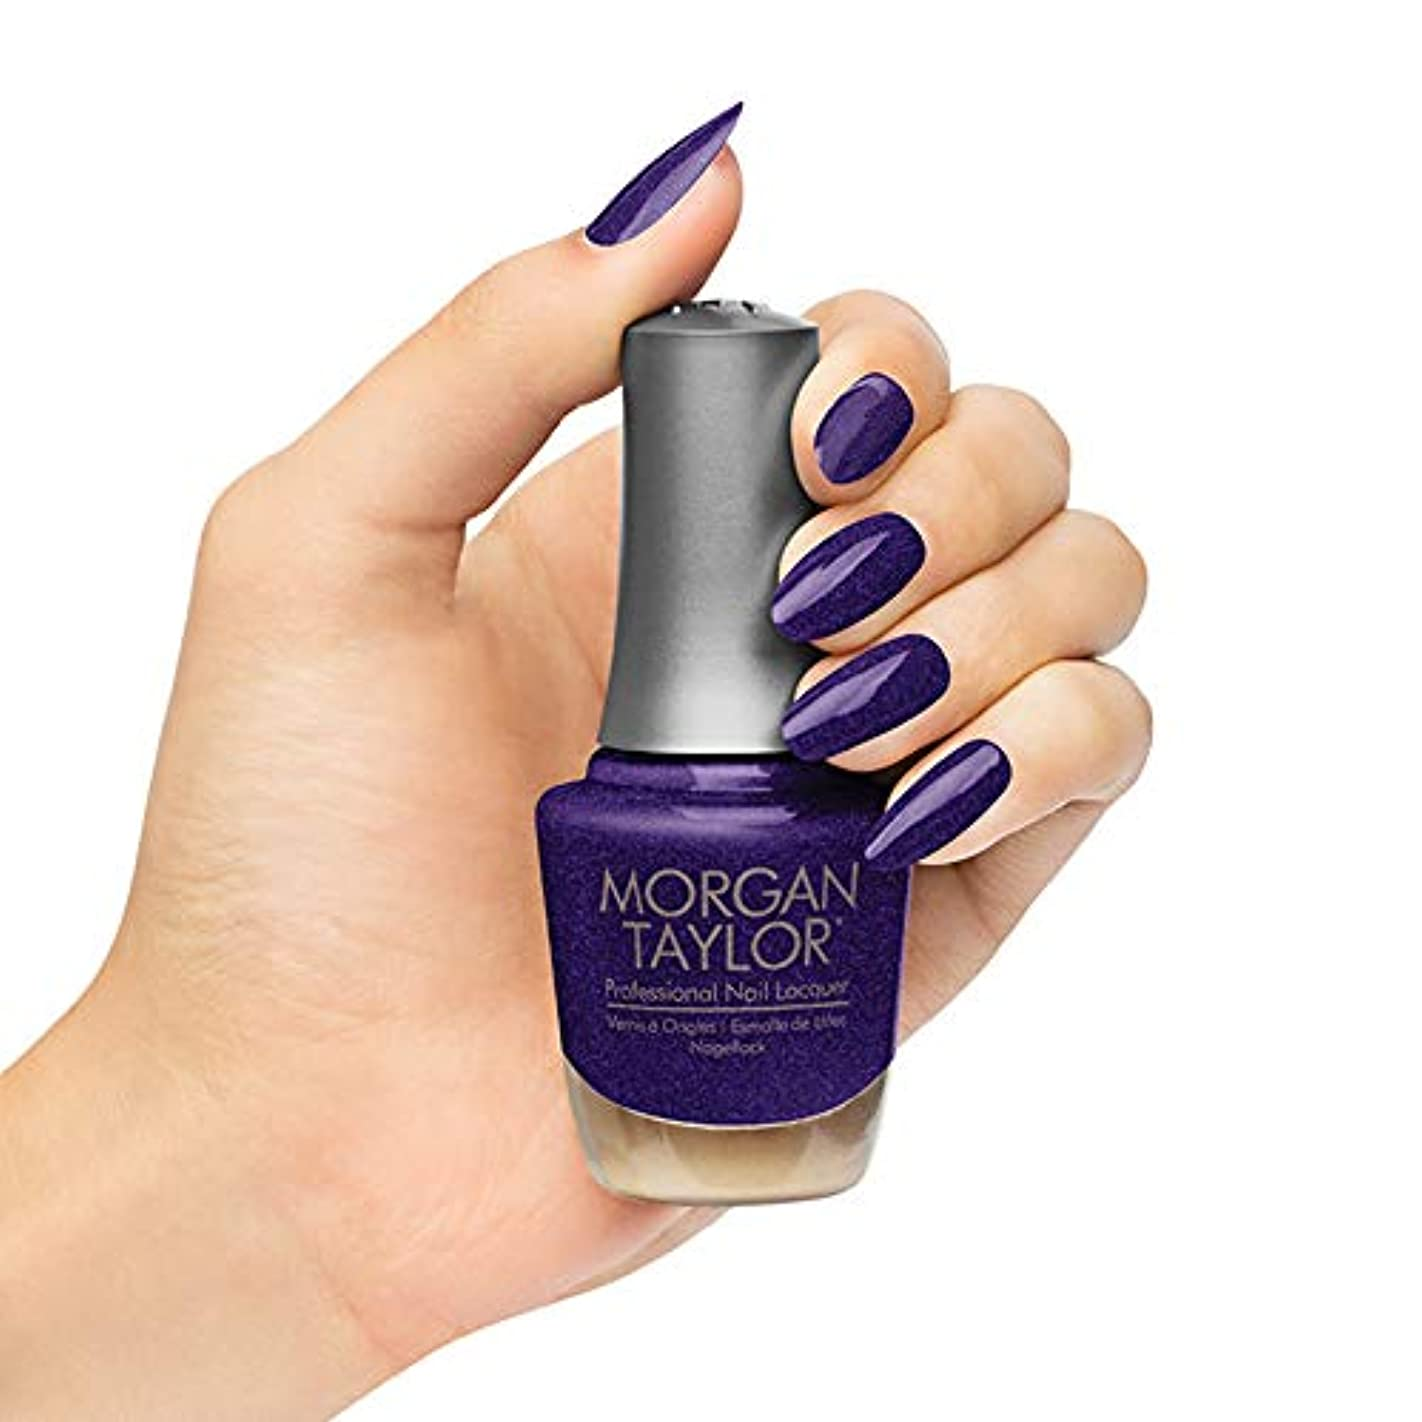 独裁発疹道に迷いましたMorgan Taylor - Professional Nail Lacquer - Best Face Forward - 15 mL / 0.5oz